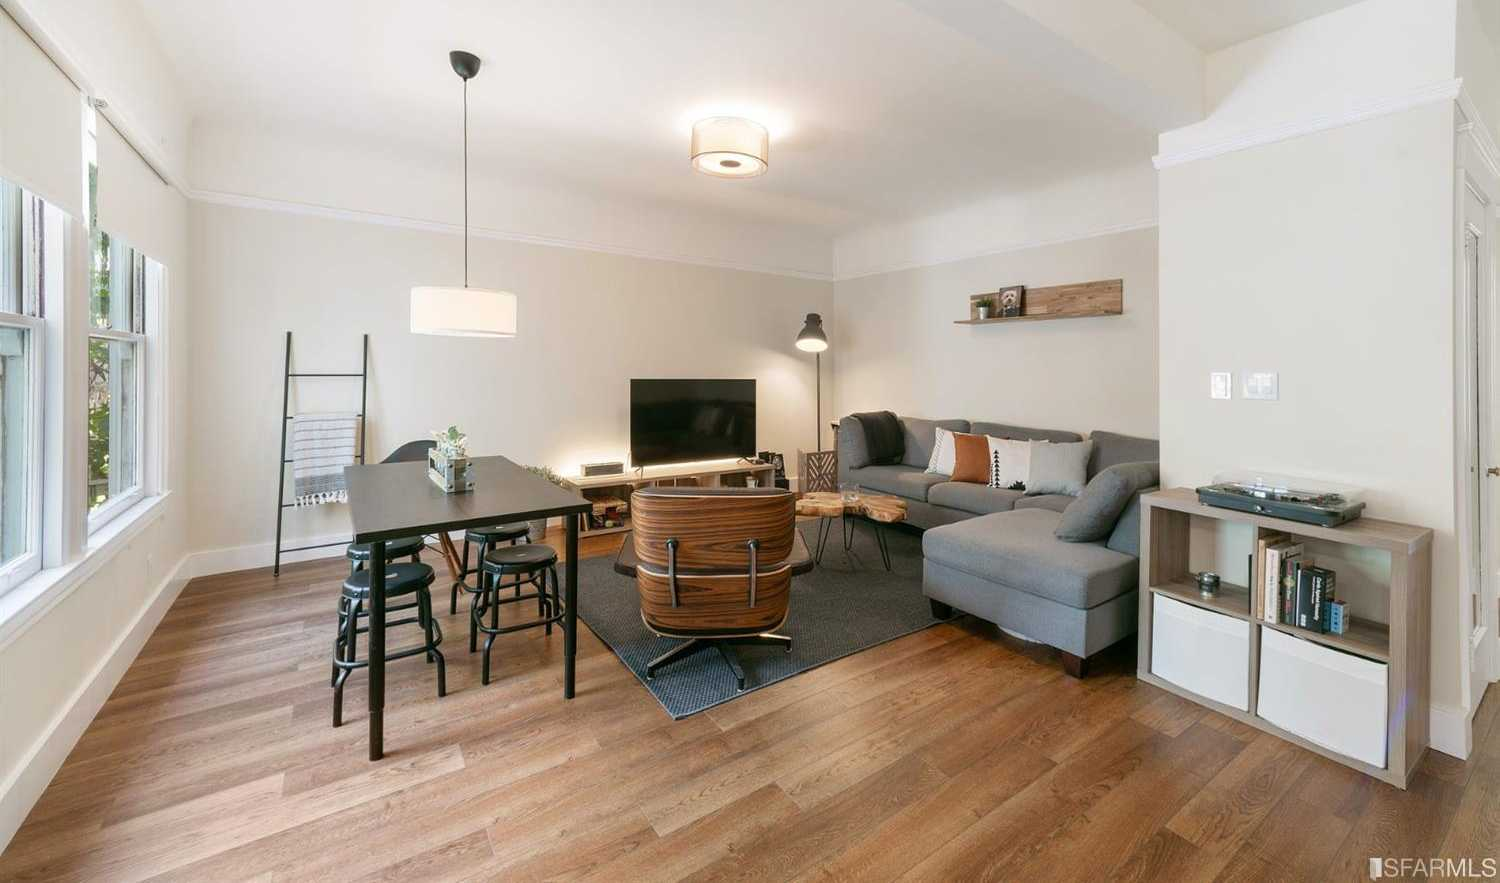 $950,000 - 1Br/1Ba -  for Sale in San Francisco